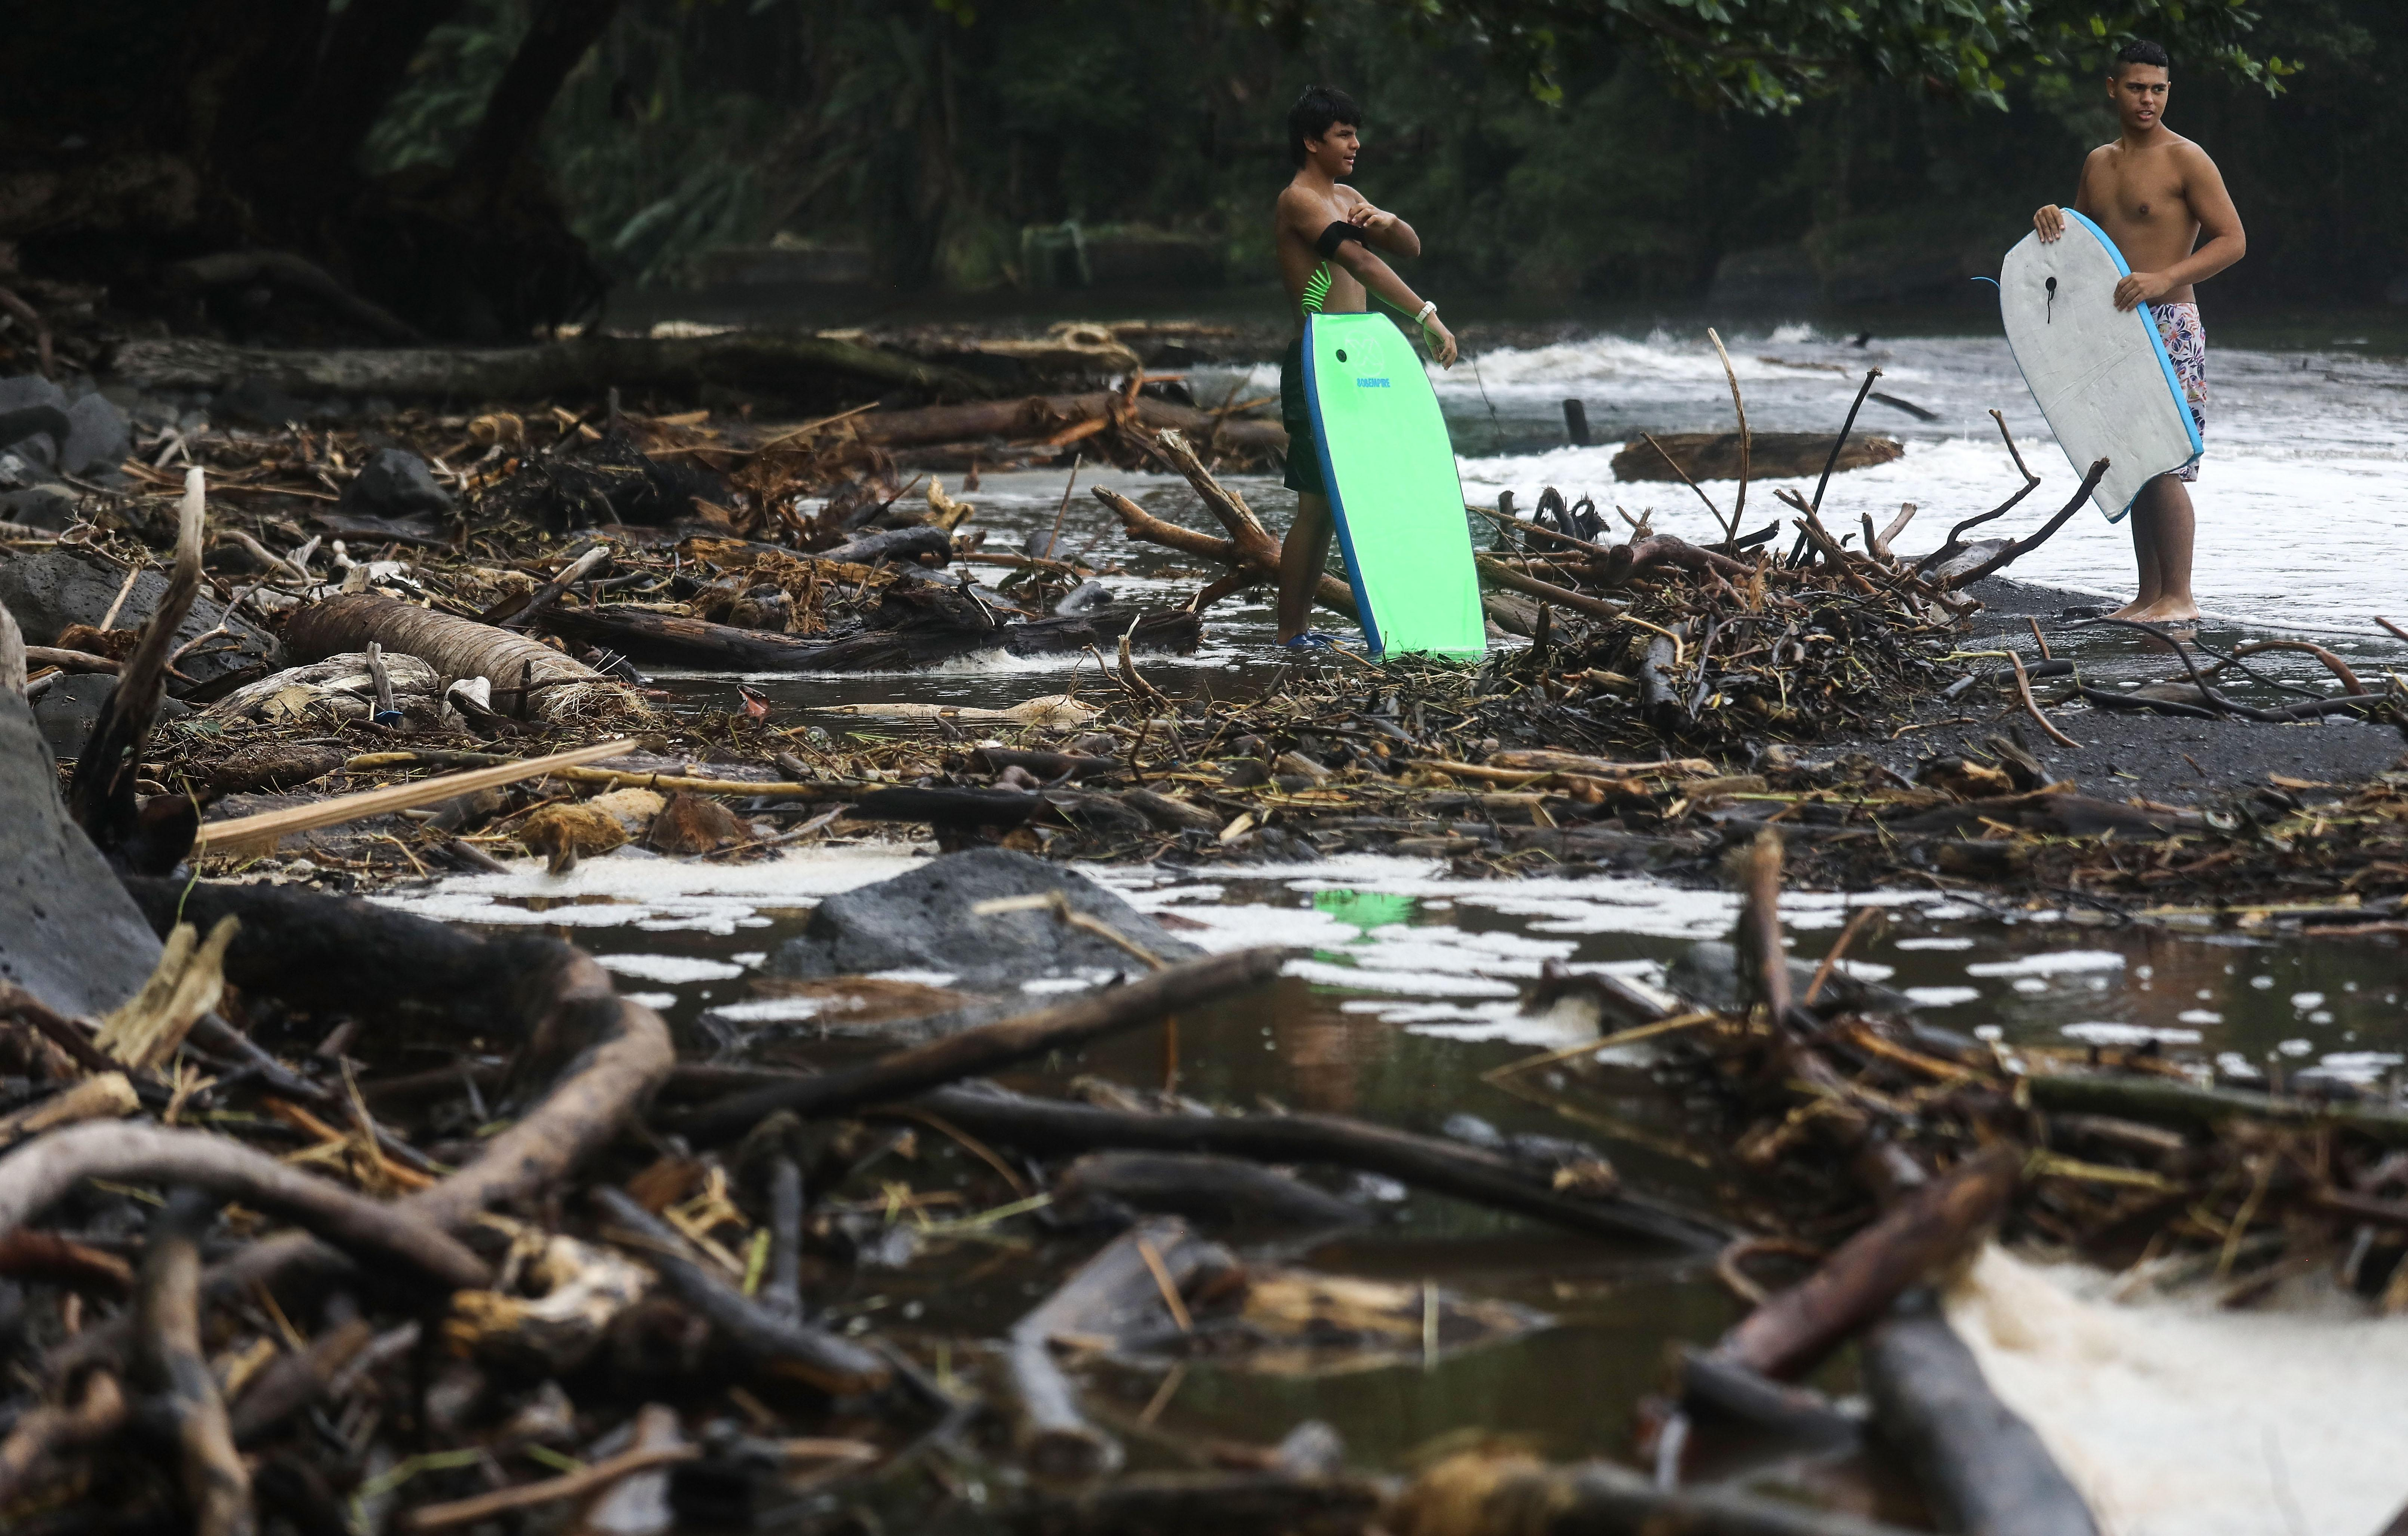 <p>Bodyboarders wait to enter the ocean near the remains of trees destroyed by flooding from the former Hurricane Lane at Honoli'i Beach Park on Aug. 26, 2018 in Hilo, Hawaii. (Photo: Mario Tama/Getty Images) </p>